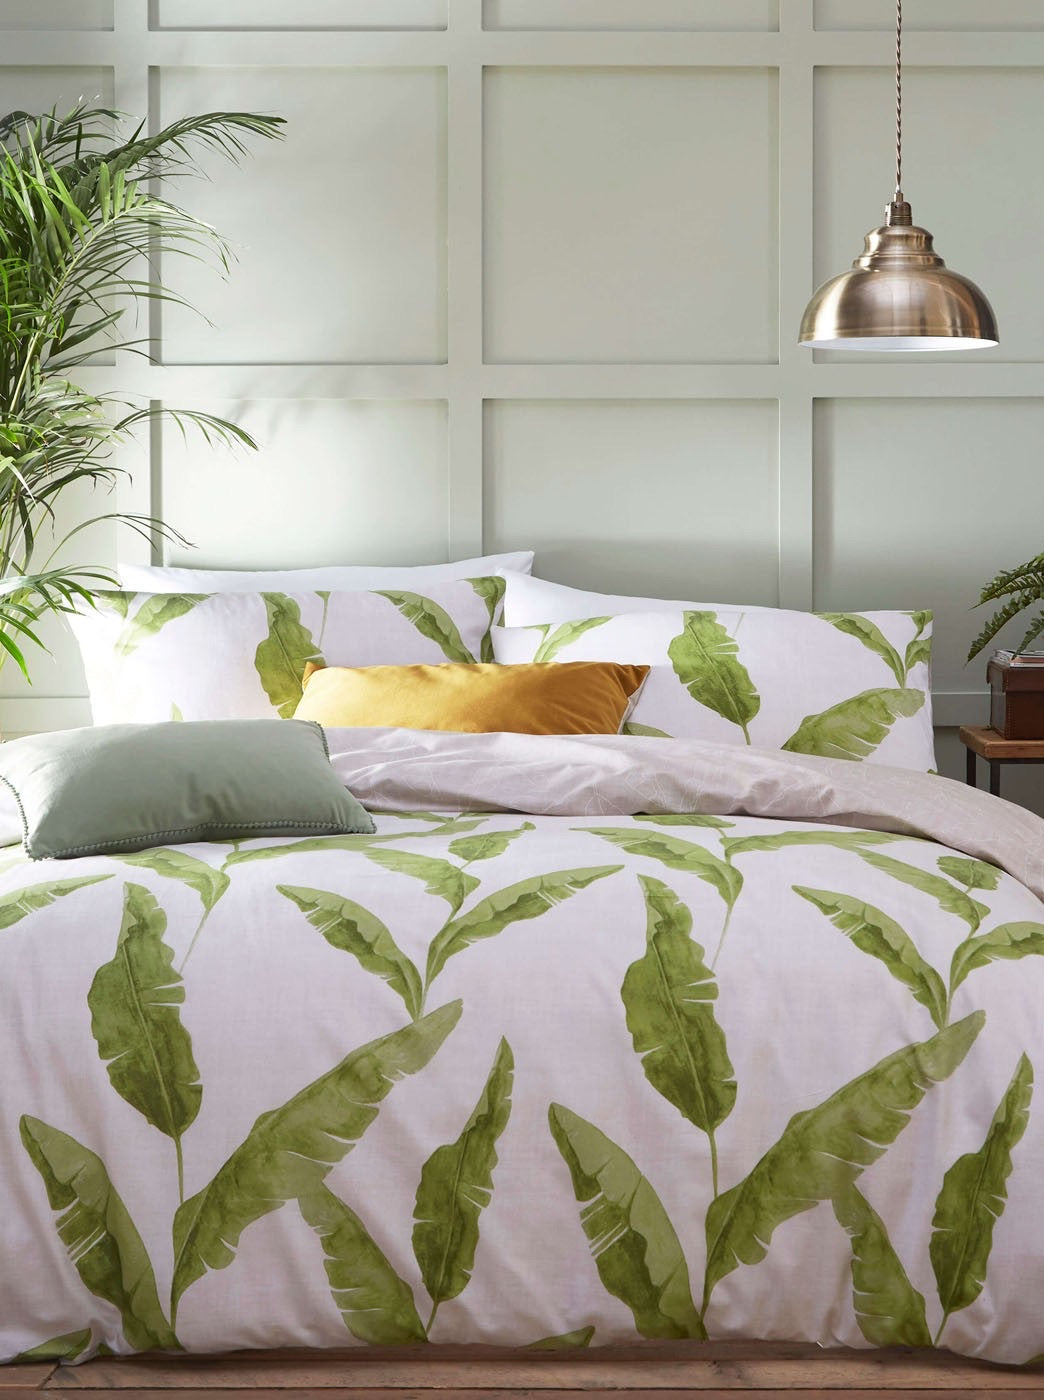 Plantain Leaf Natural Cotton Bedding